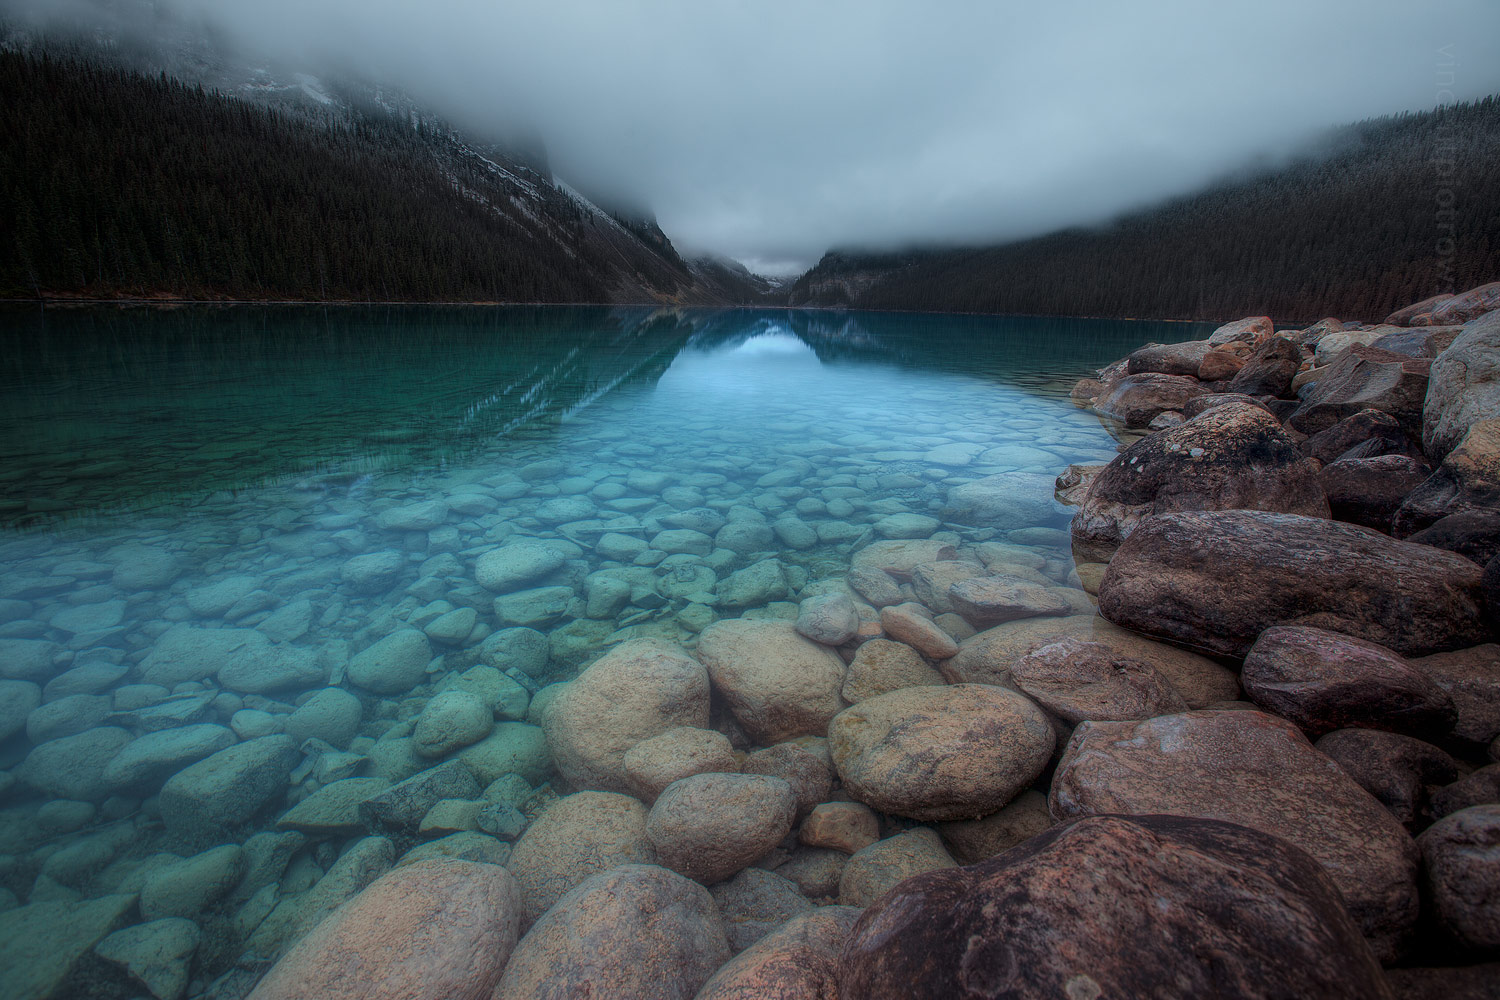 A landscape photo of Lake Louise in Banff National Park taken on a very overcast day with low hanging cloud that enhances the colour of the turquoise water.